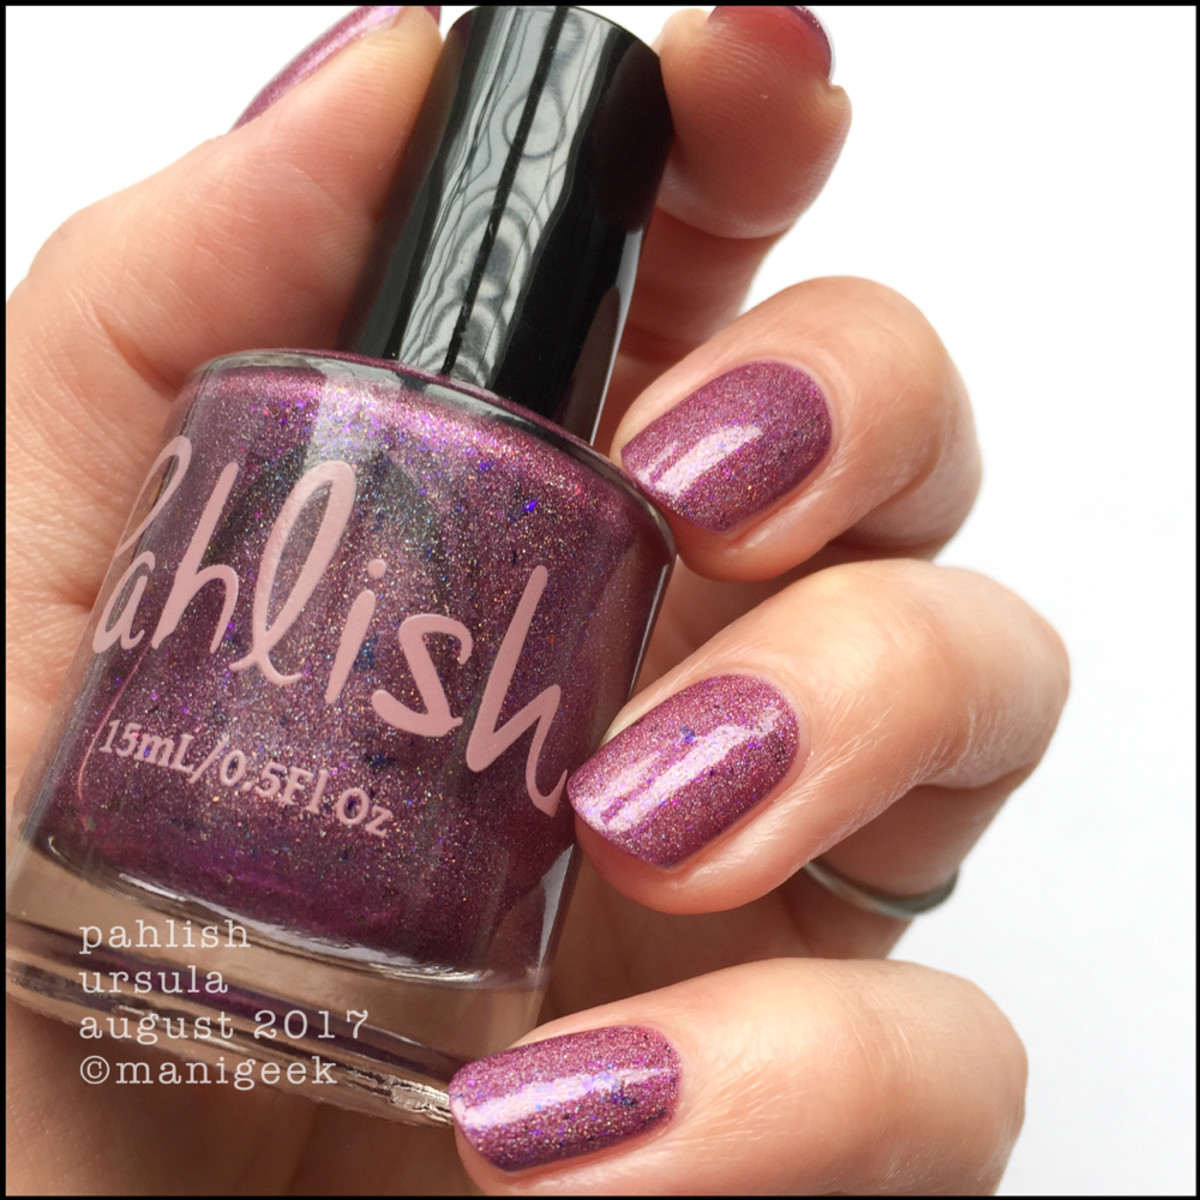 Pahlish Ursula Swatches 2 _ Pahlish August 2017 Swatches Review